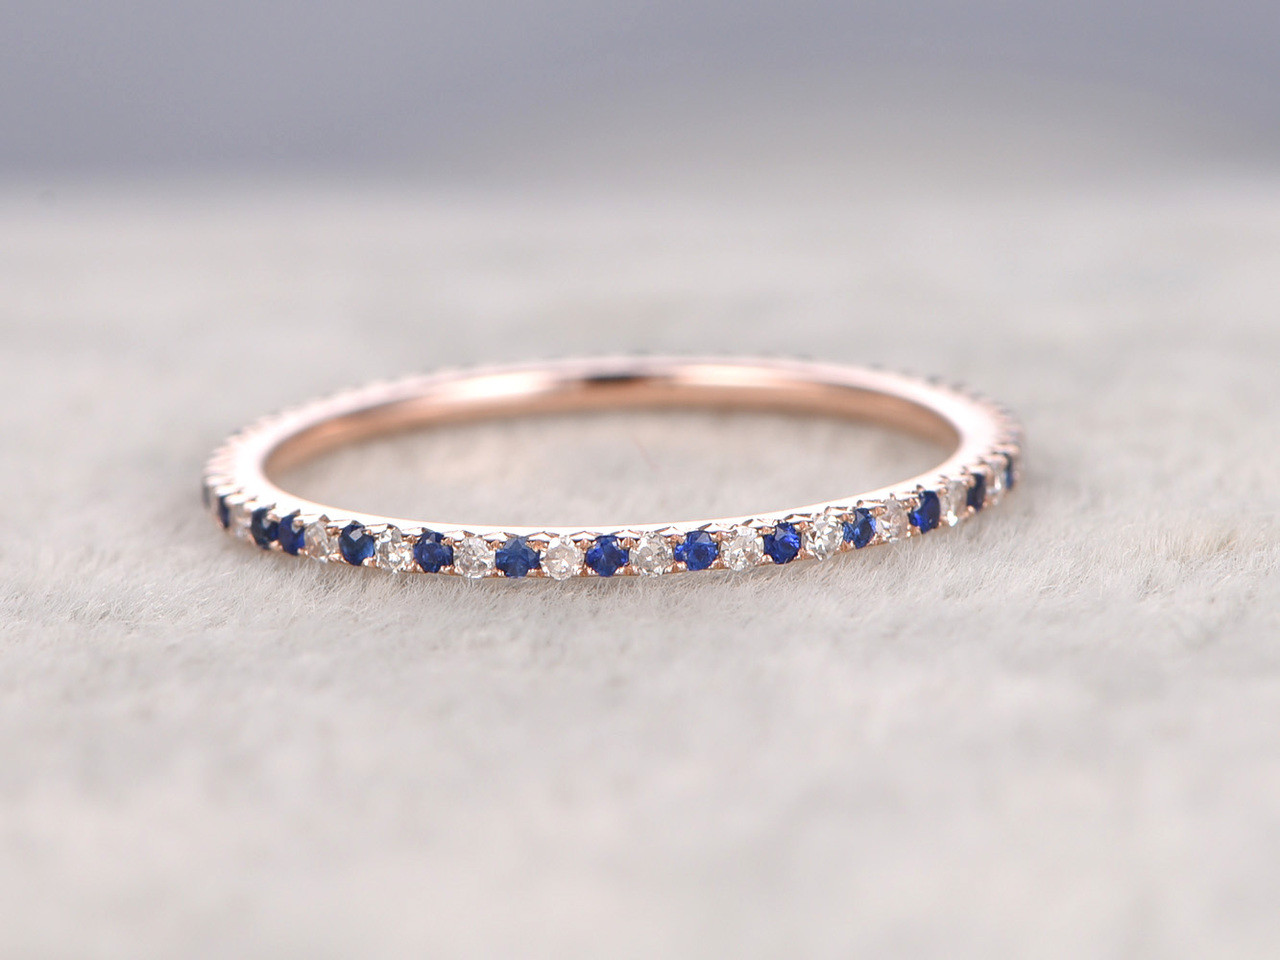 Sapphire and Diamond Wedding Rings 14k Rose Gold Thin Pave Half